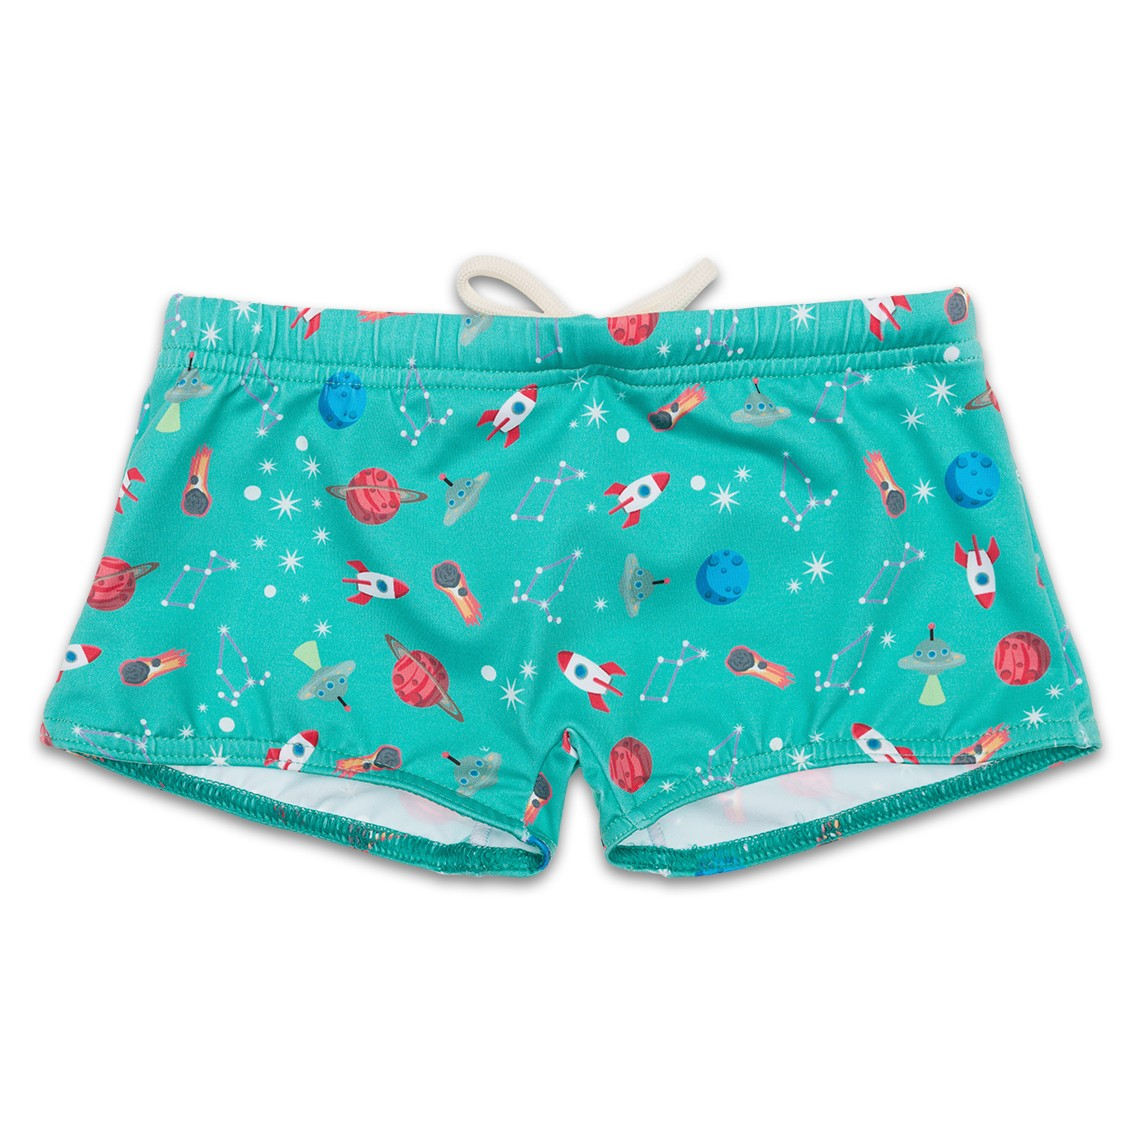 Boy Swimsuit Green Space Ships 1 year